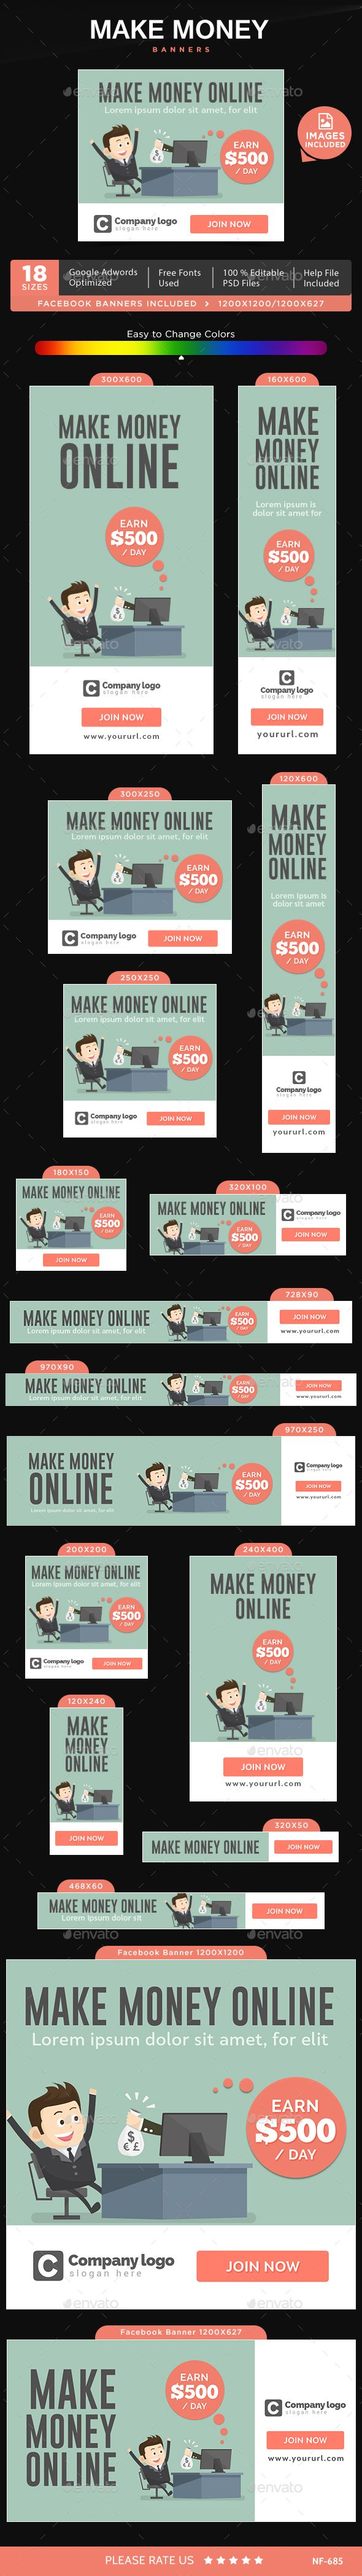 Make Money Web Banners Template #design #ad Download: http://graphicriver.net/item/make-money-banners/13110266?ref=ksioks